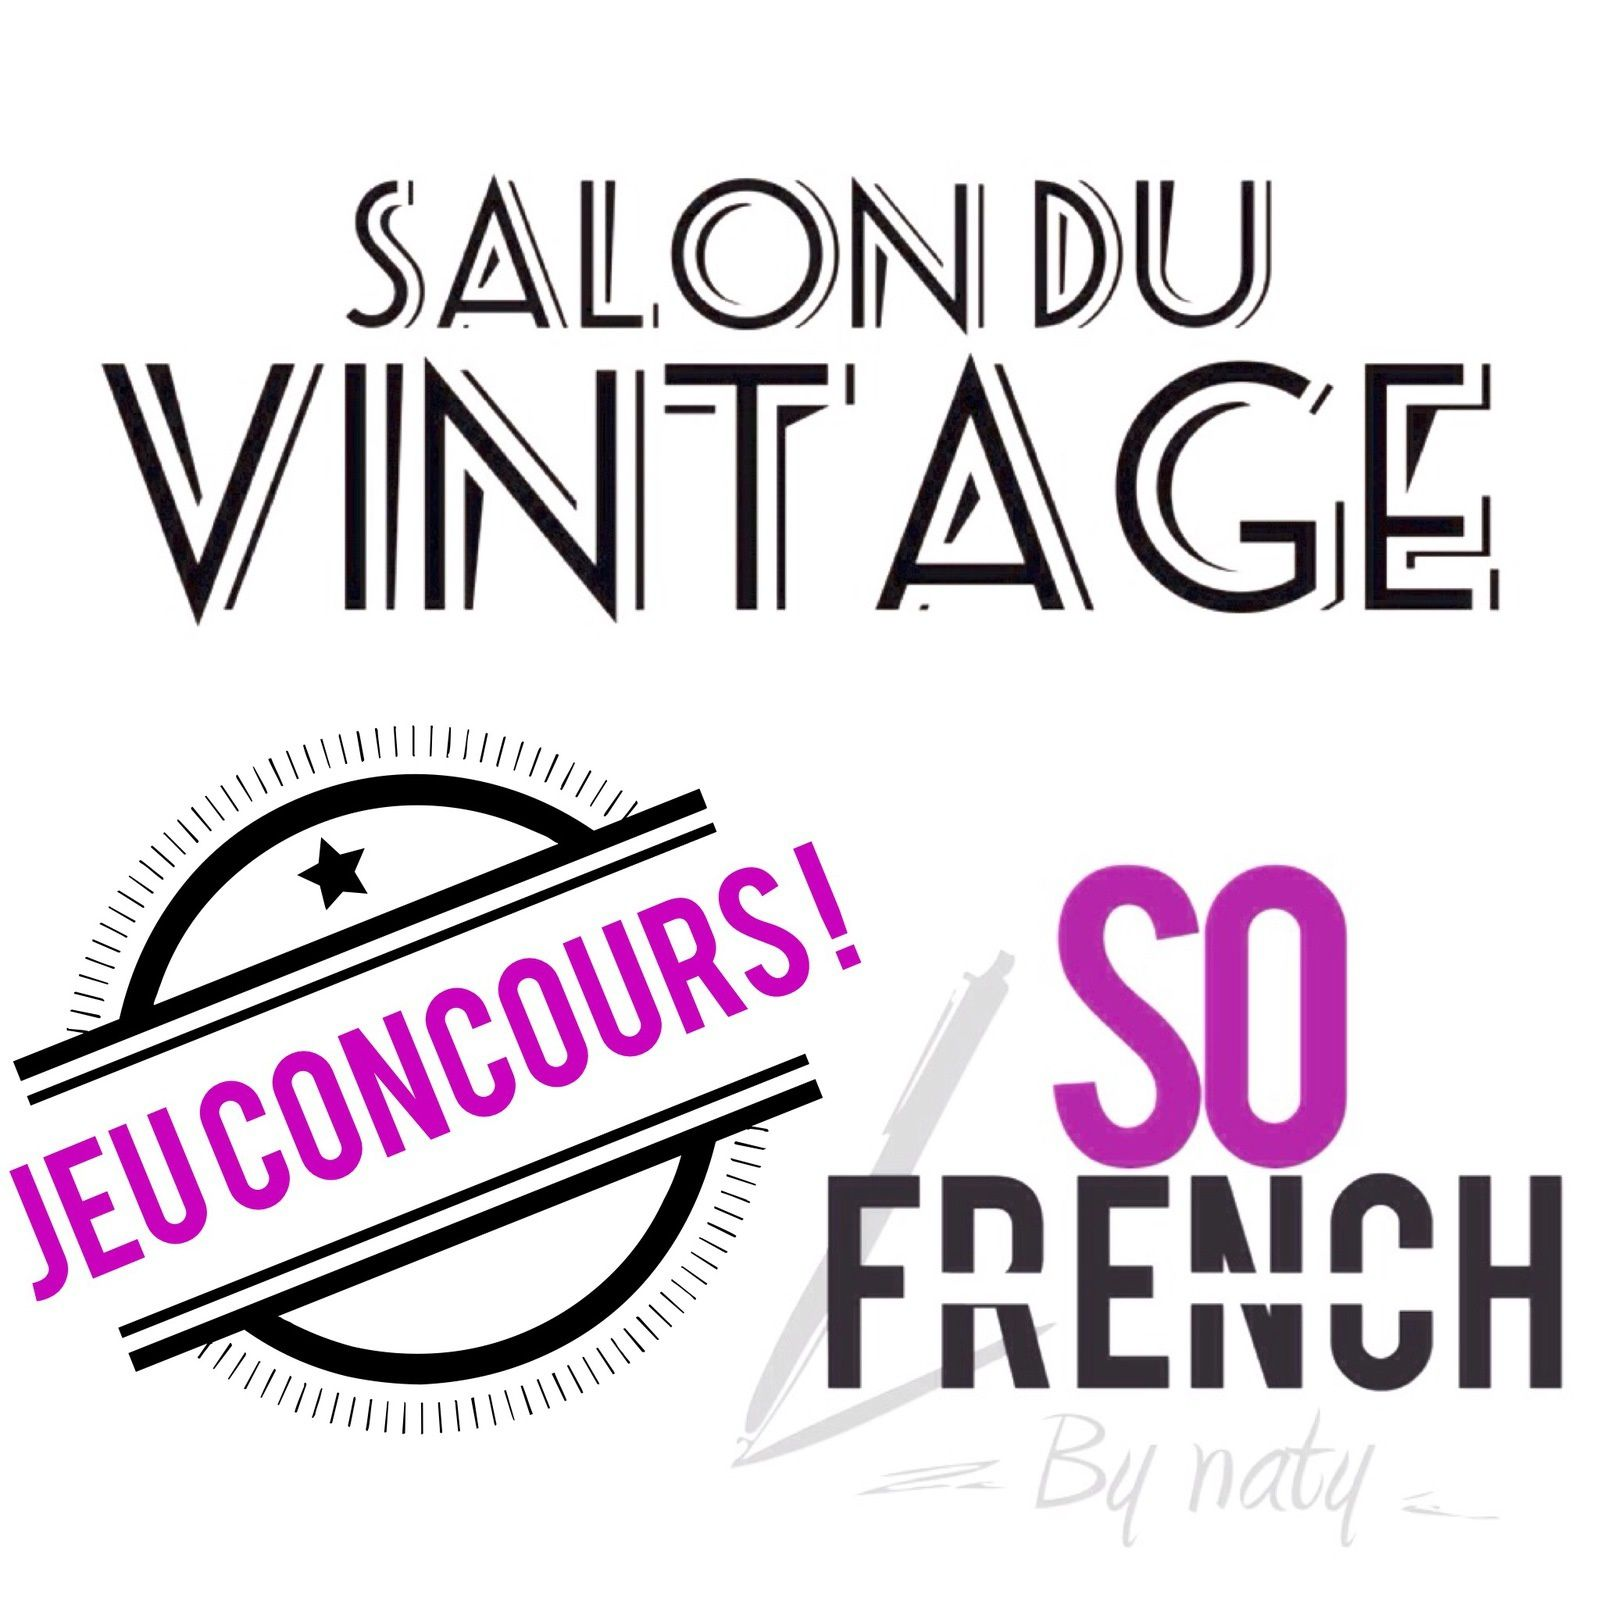 Salon Du Vintage Le Salon Du Vintage Gagnez Vos Places So French By Naty